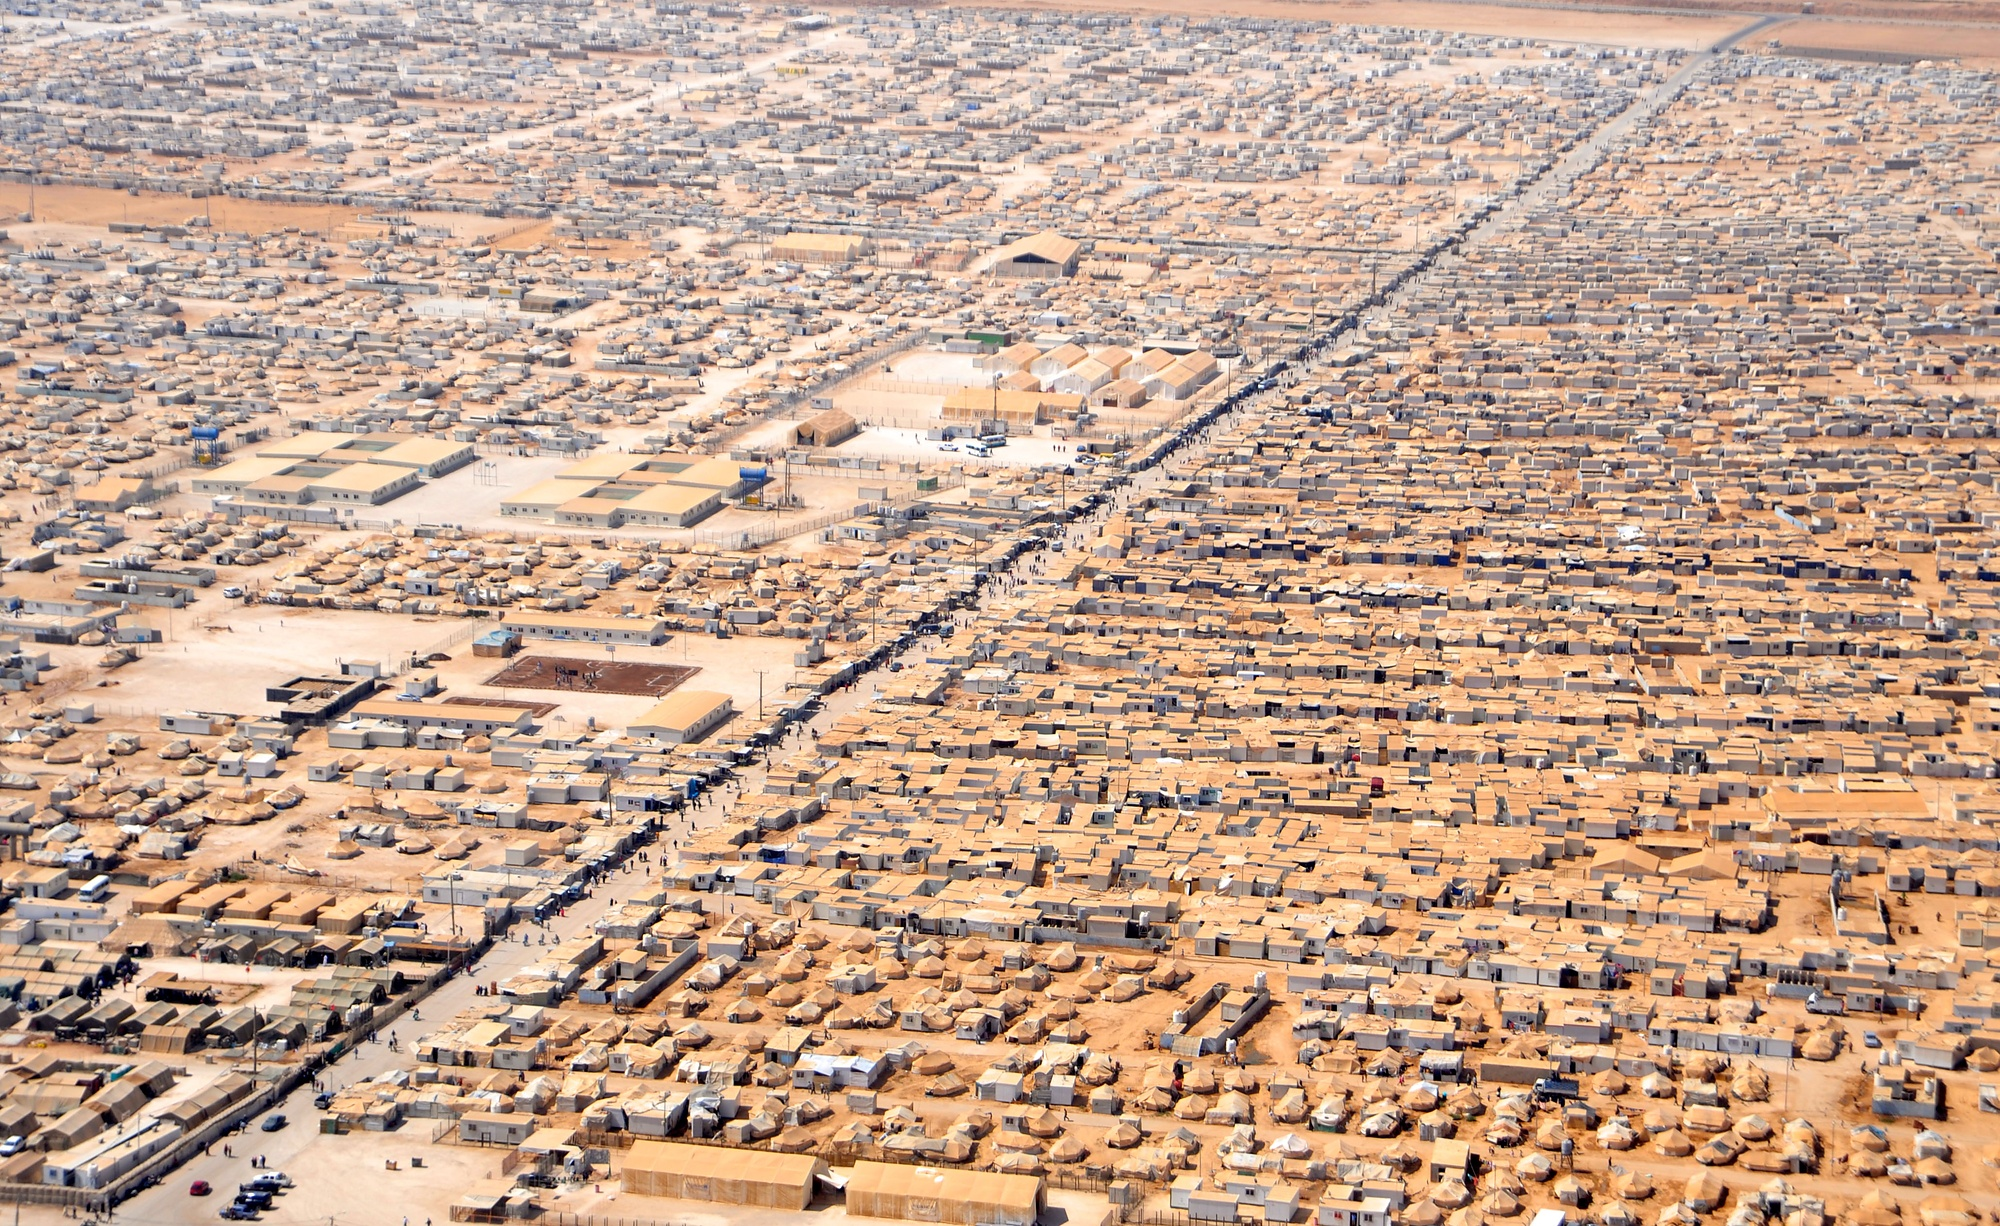 The Zaatari refugee camp in Jordan is the 2nd largest in the world